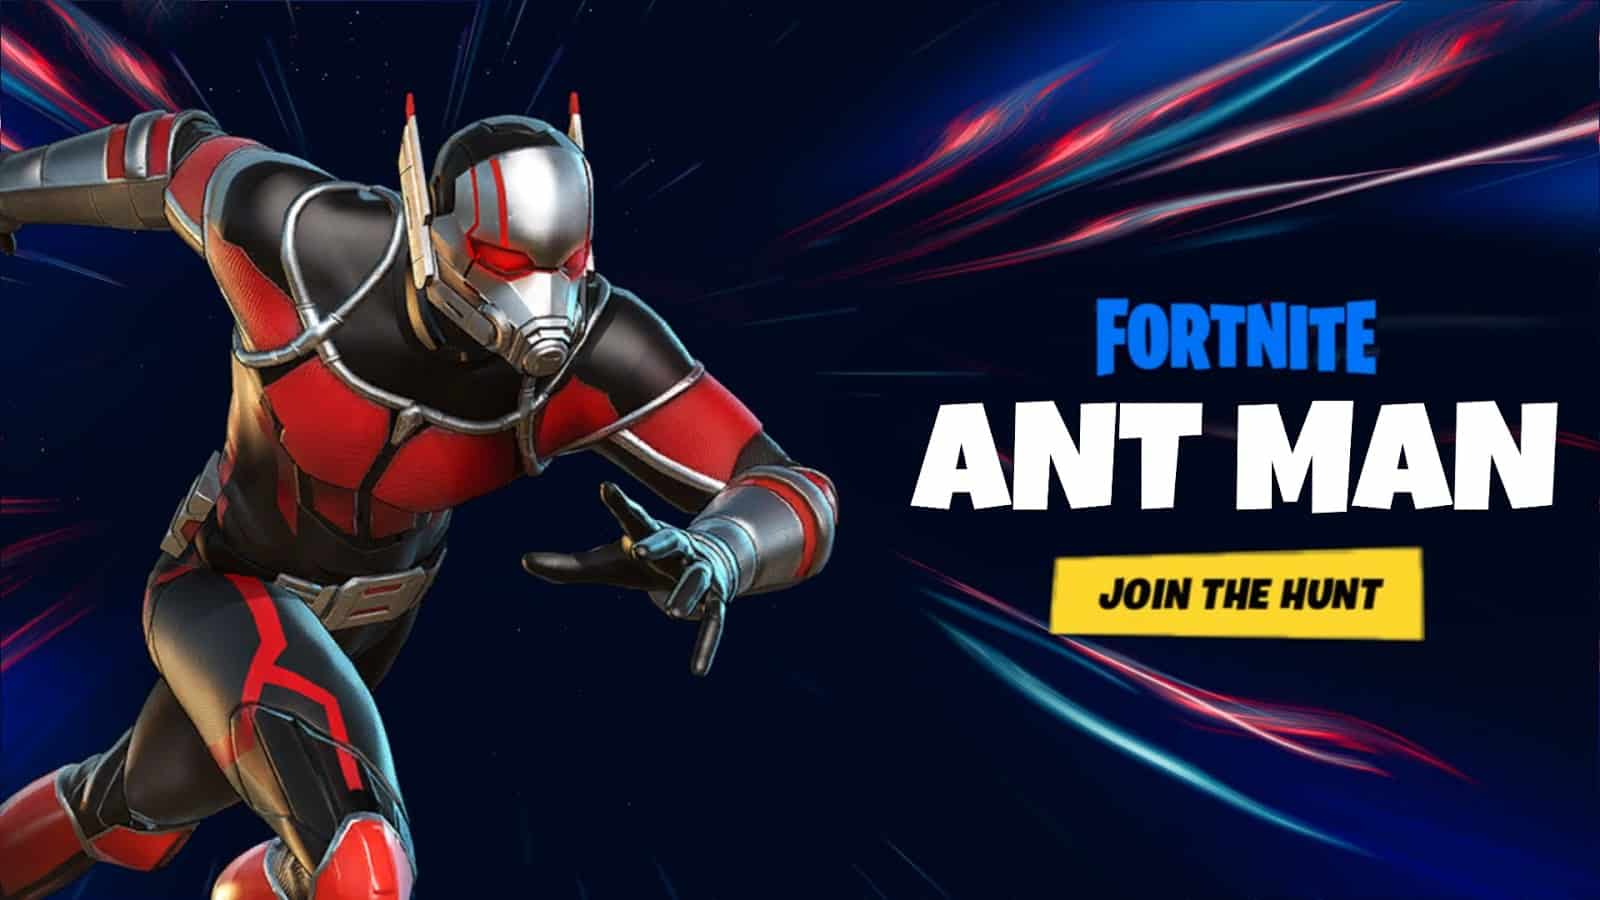 Fortnite: Leaks Confirm Ant-Man As Next Cross-Over